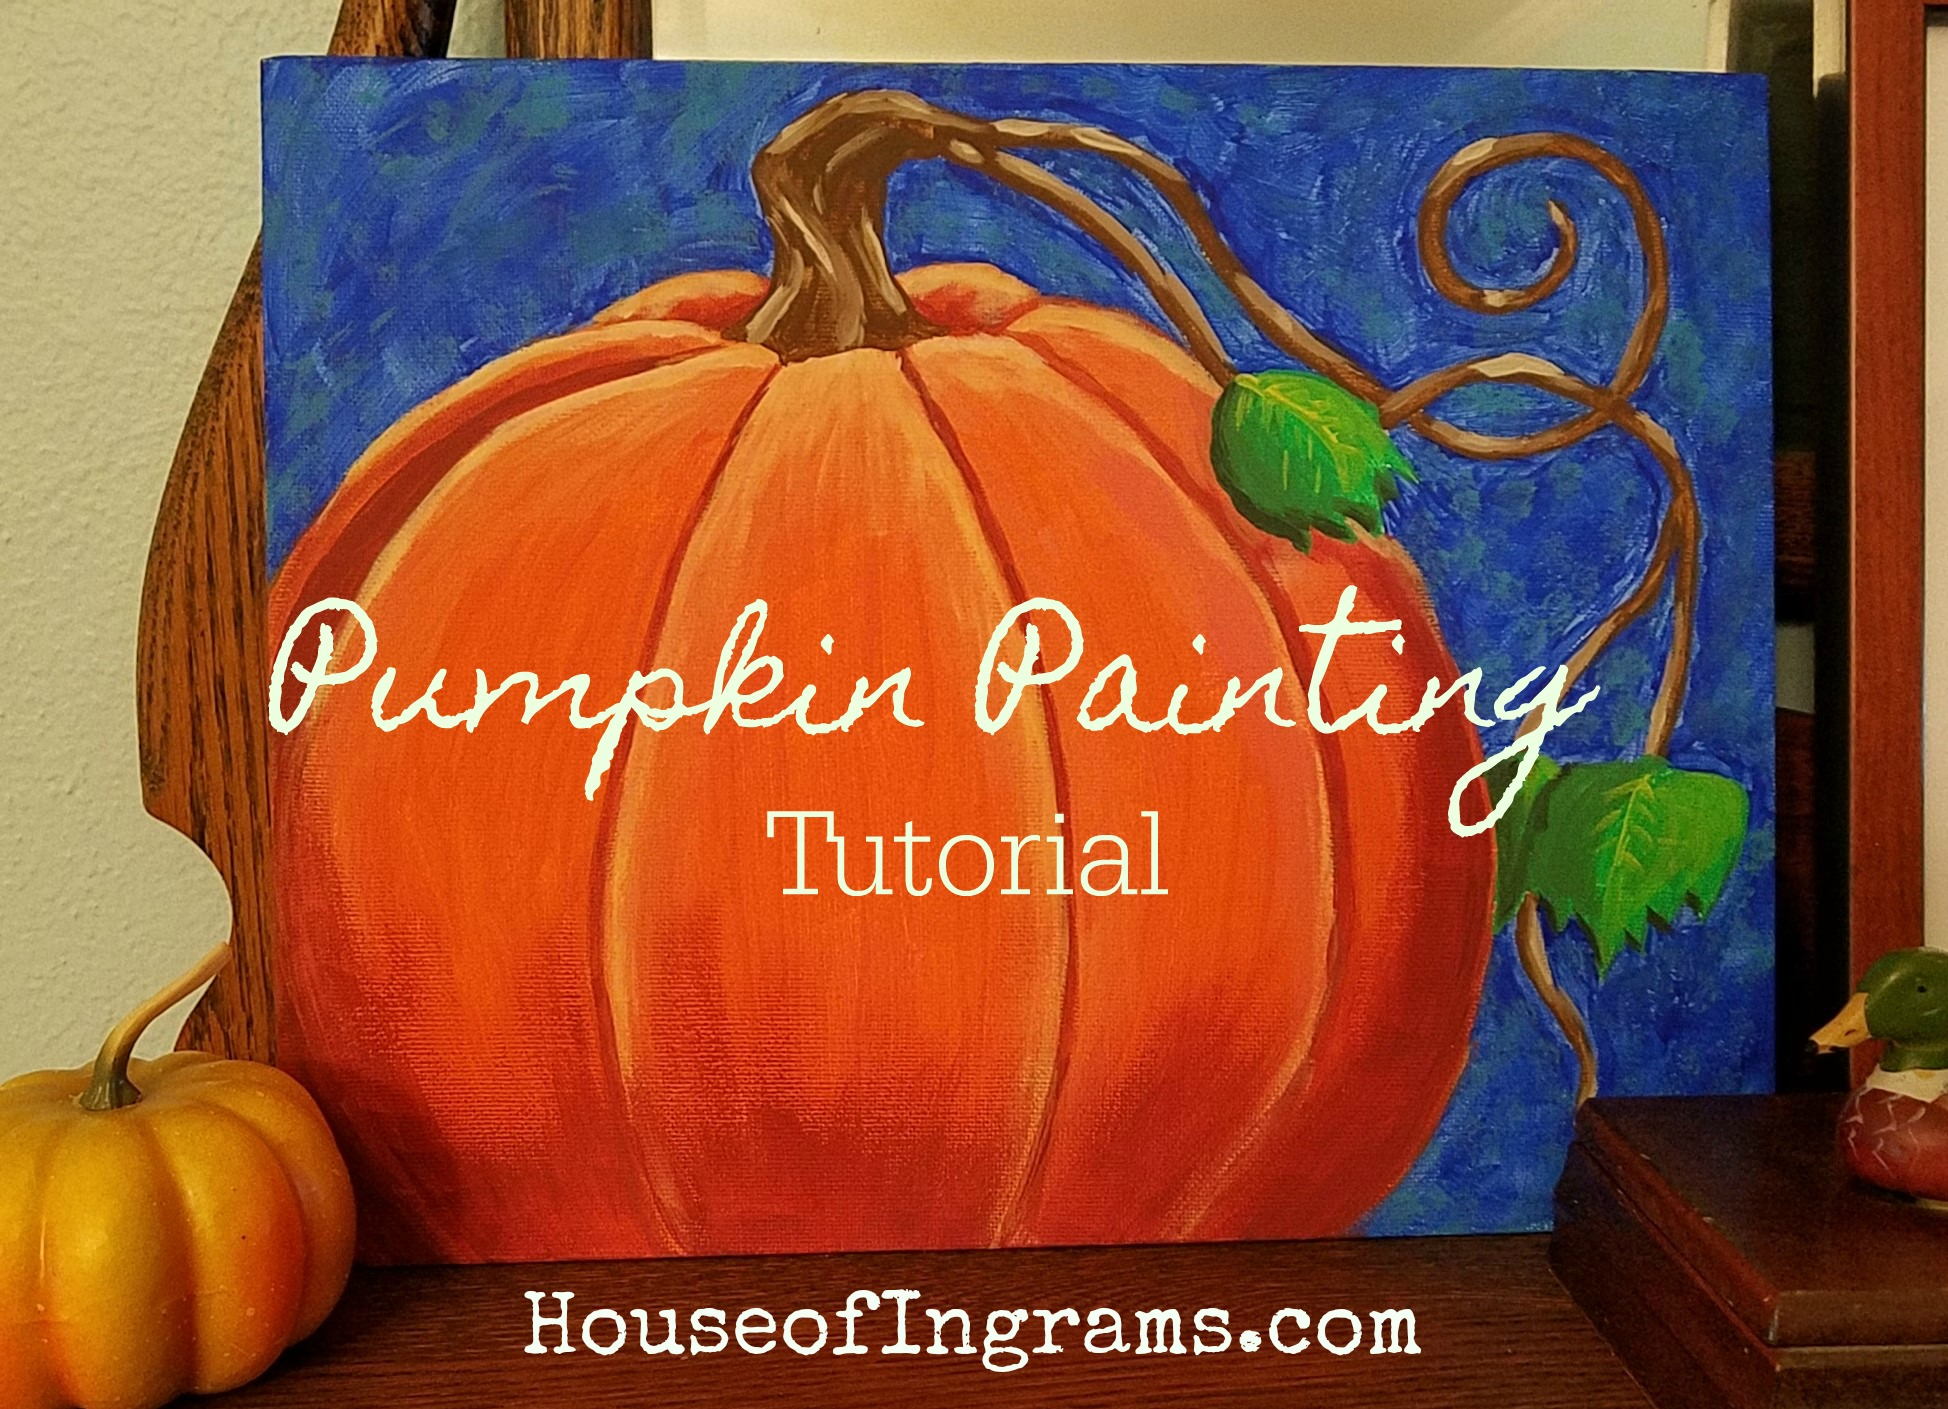 Acrylic Pumpkin Canvas Painting Tutorial